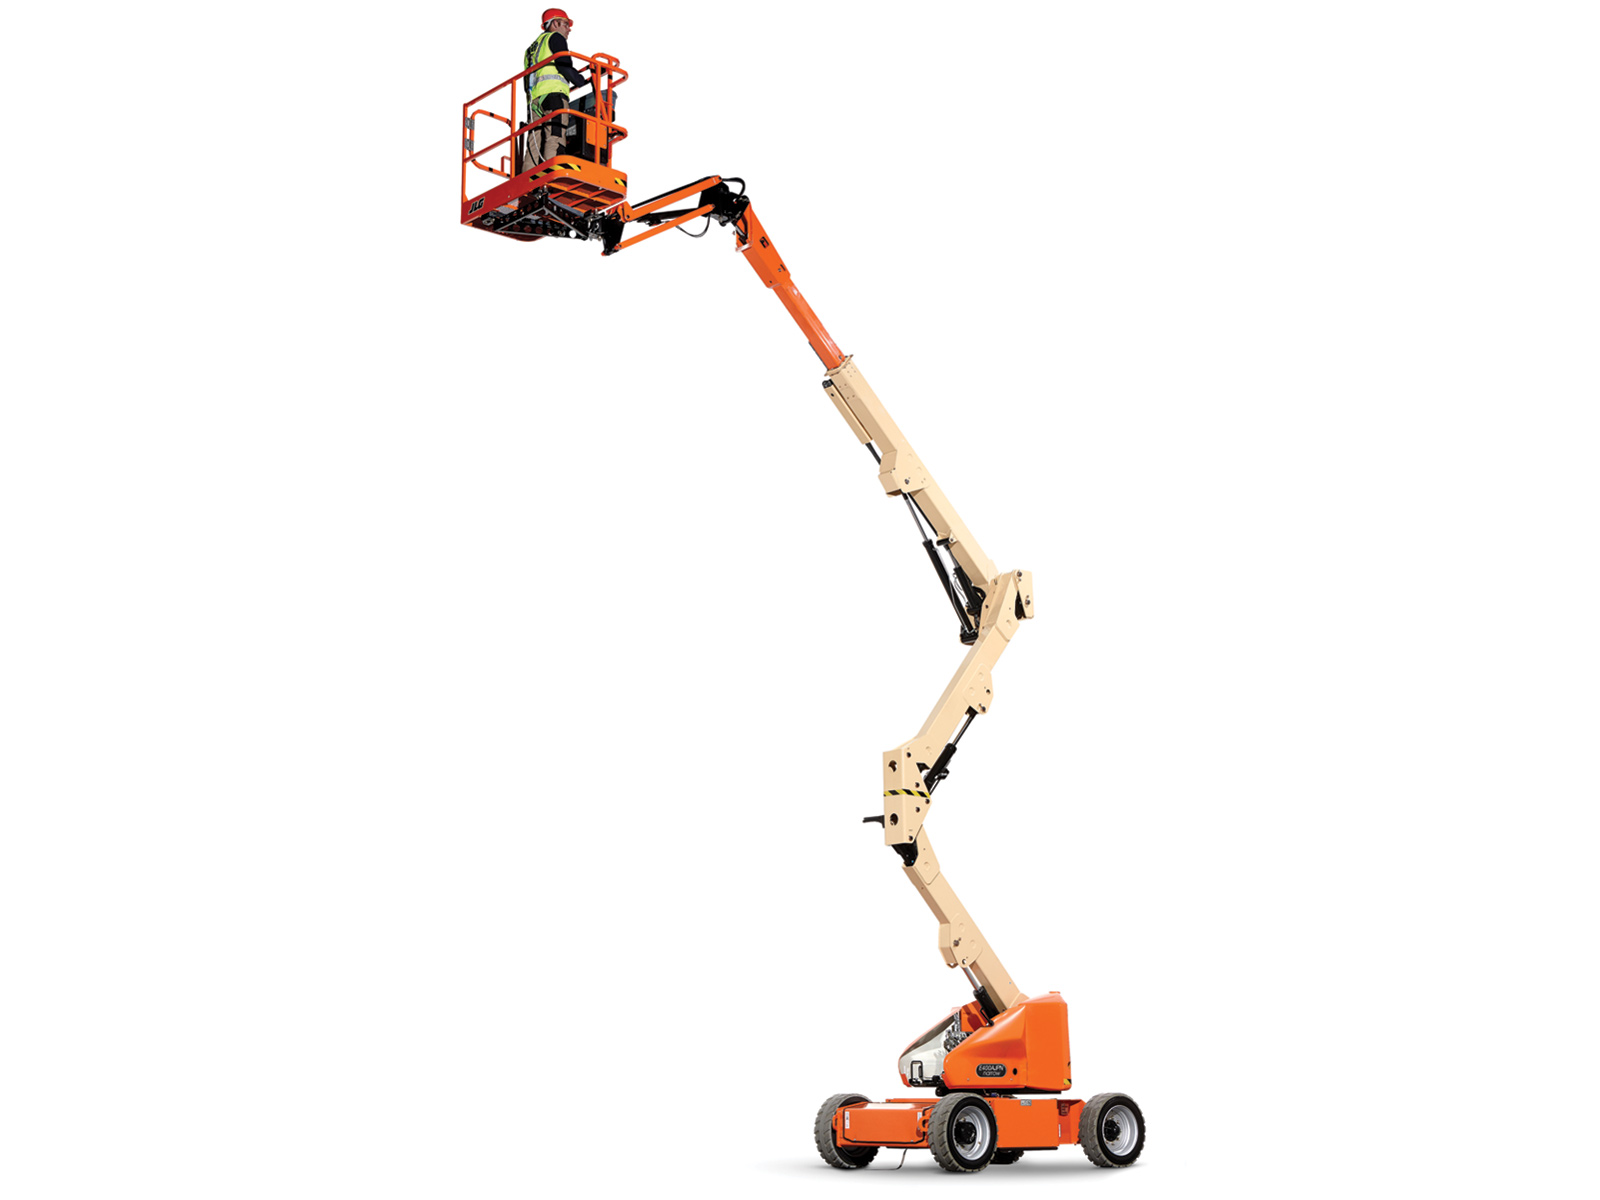 New Equipment Manufacturer Models Available In Wi Jlg 20am Wiring Diagram Click Here For Larger Image